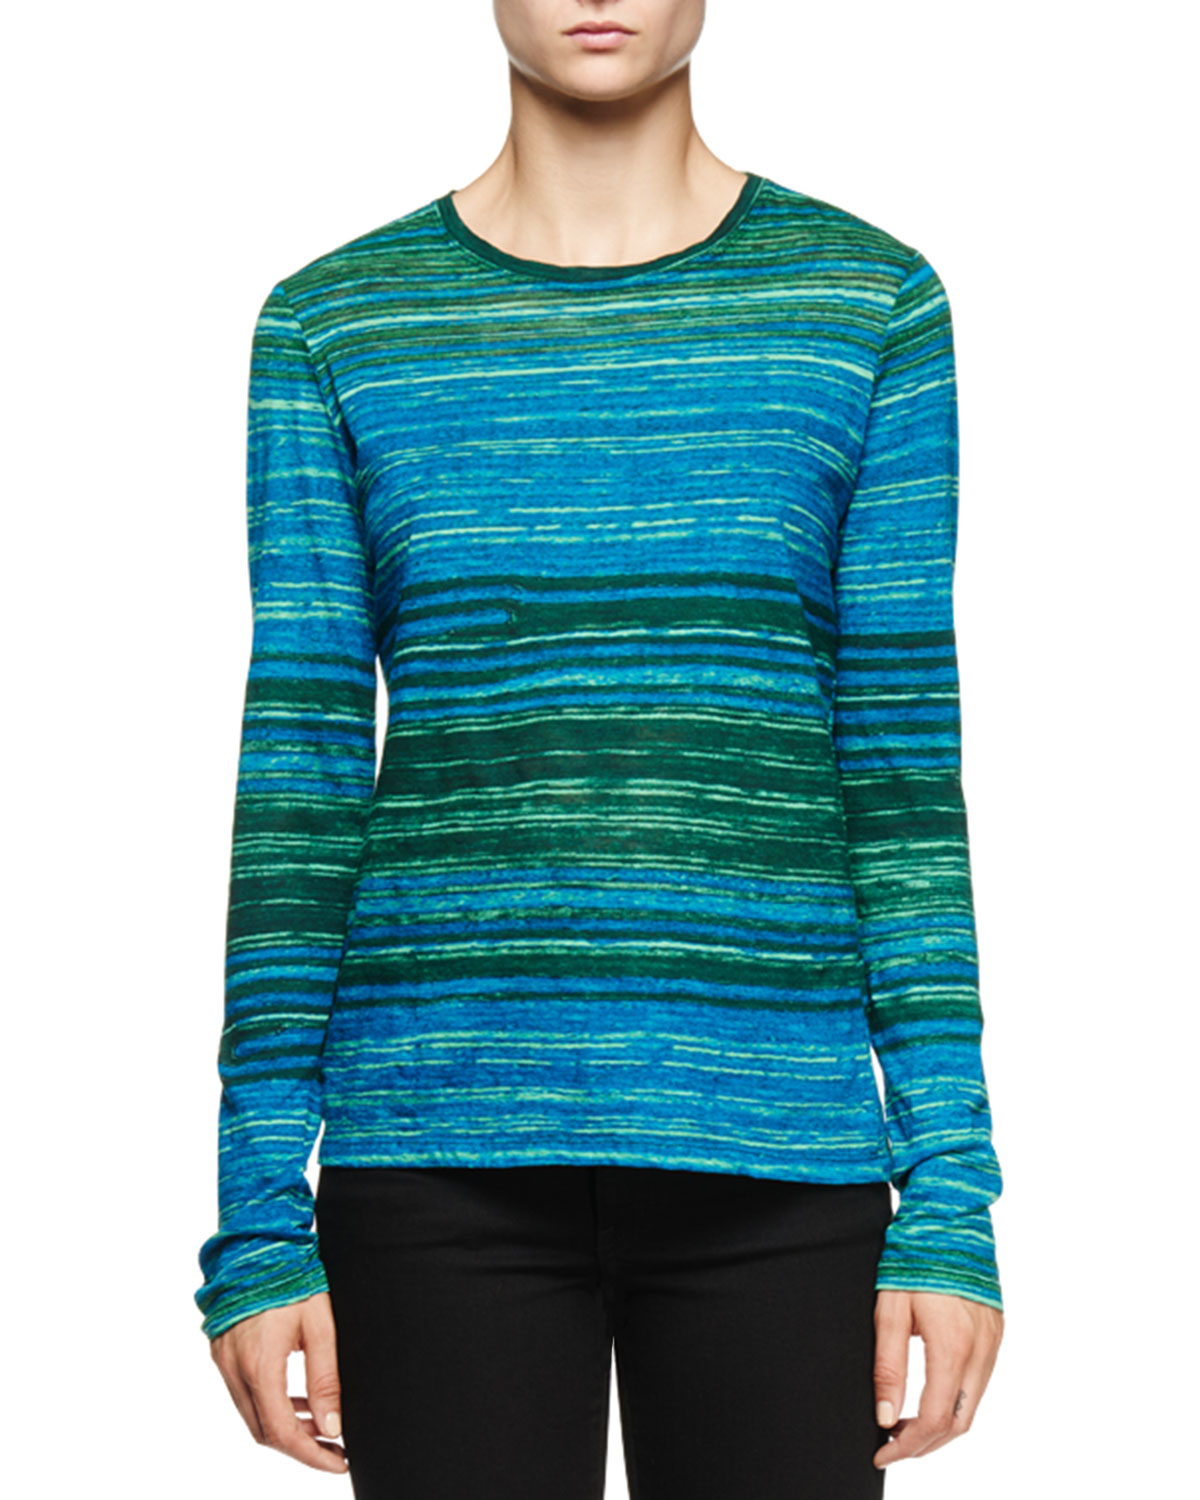 Proenza schouler long sleeve multi striped t shirt in blue for Blue and white striped long sleeve t shirt